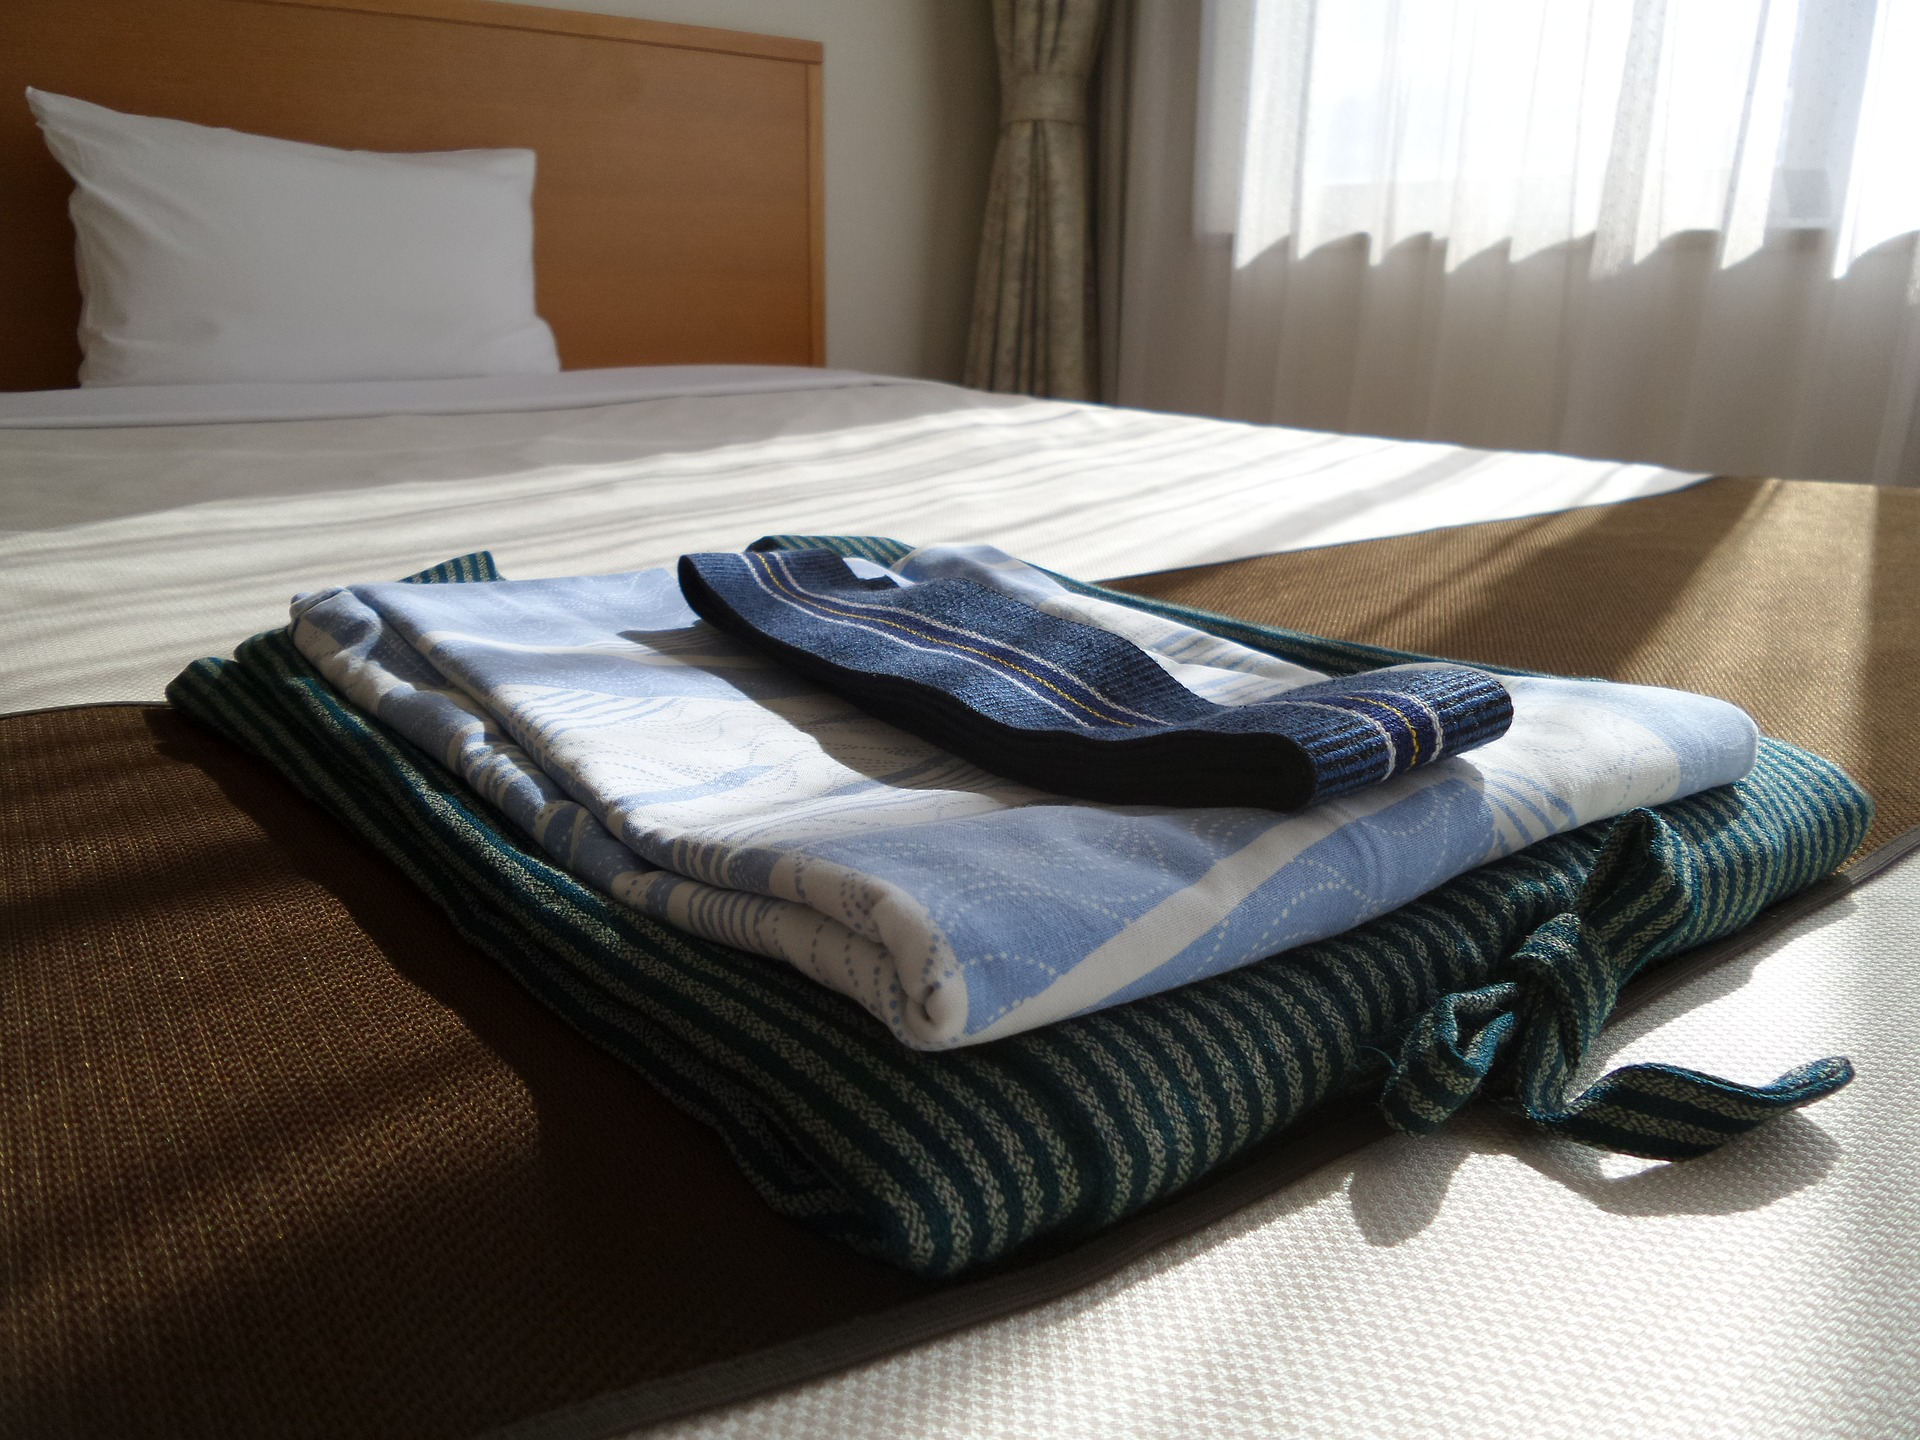 Folded clothes on a bed